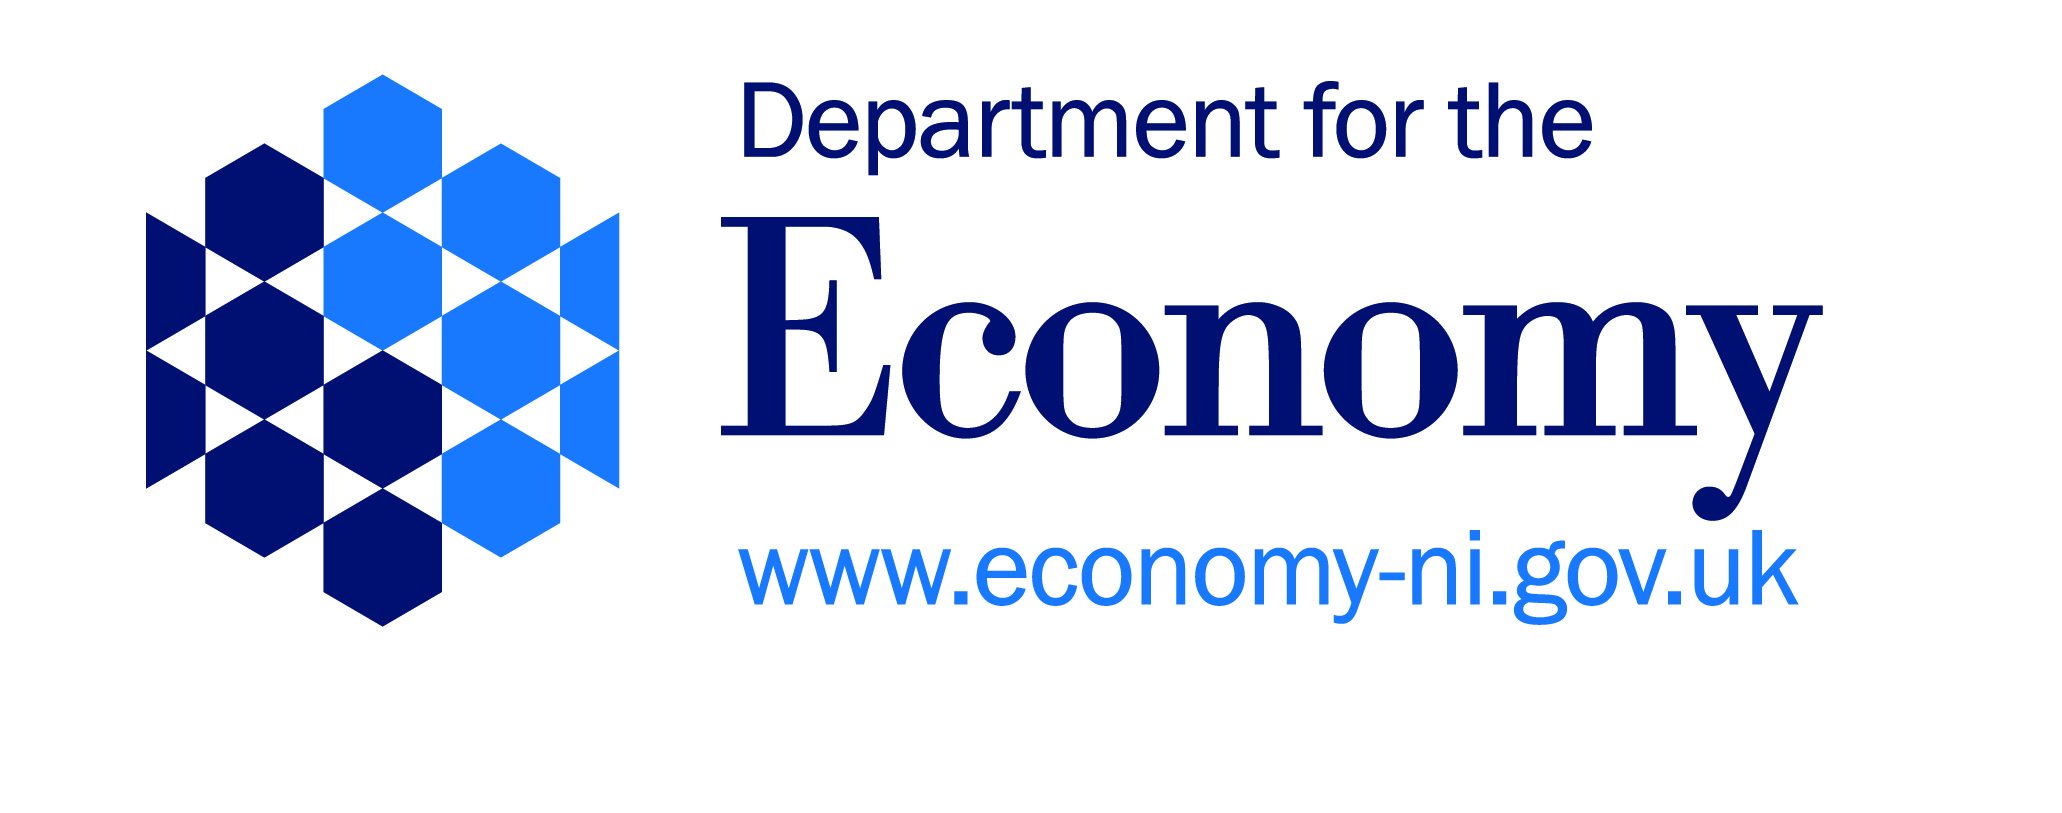 Department for the Economy